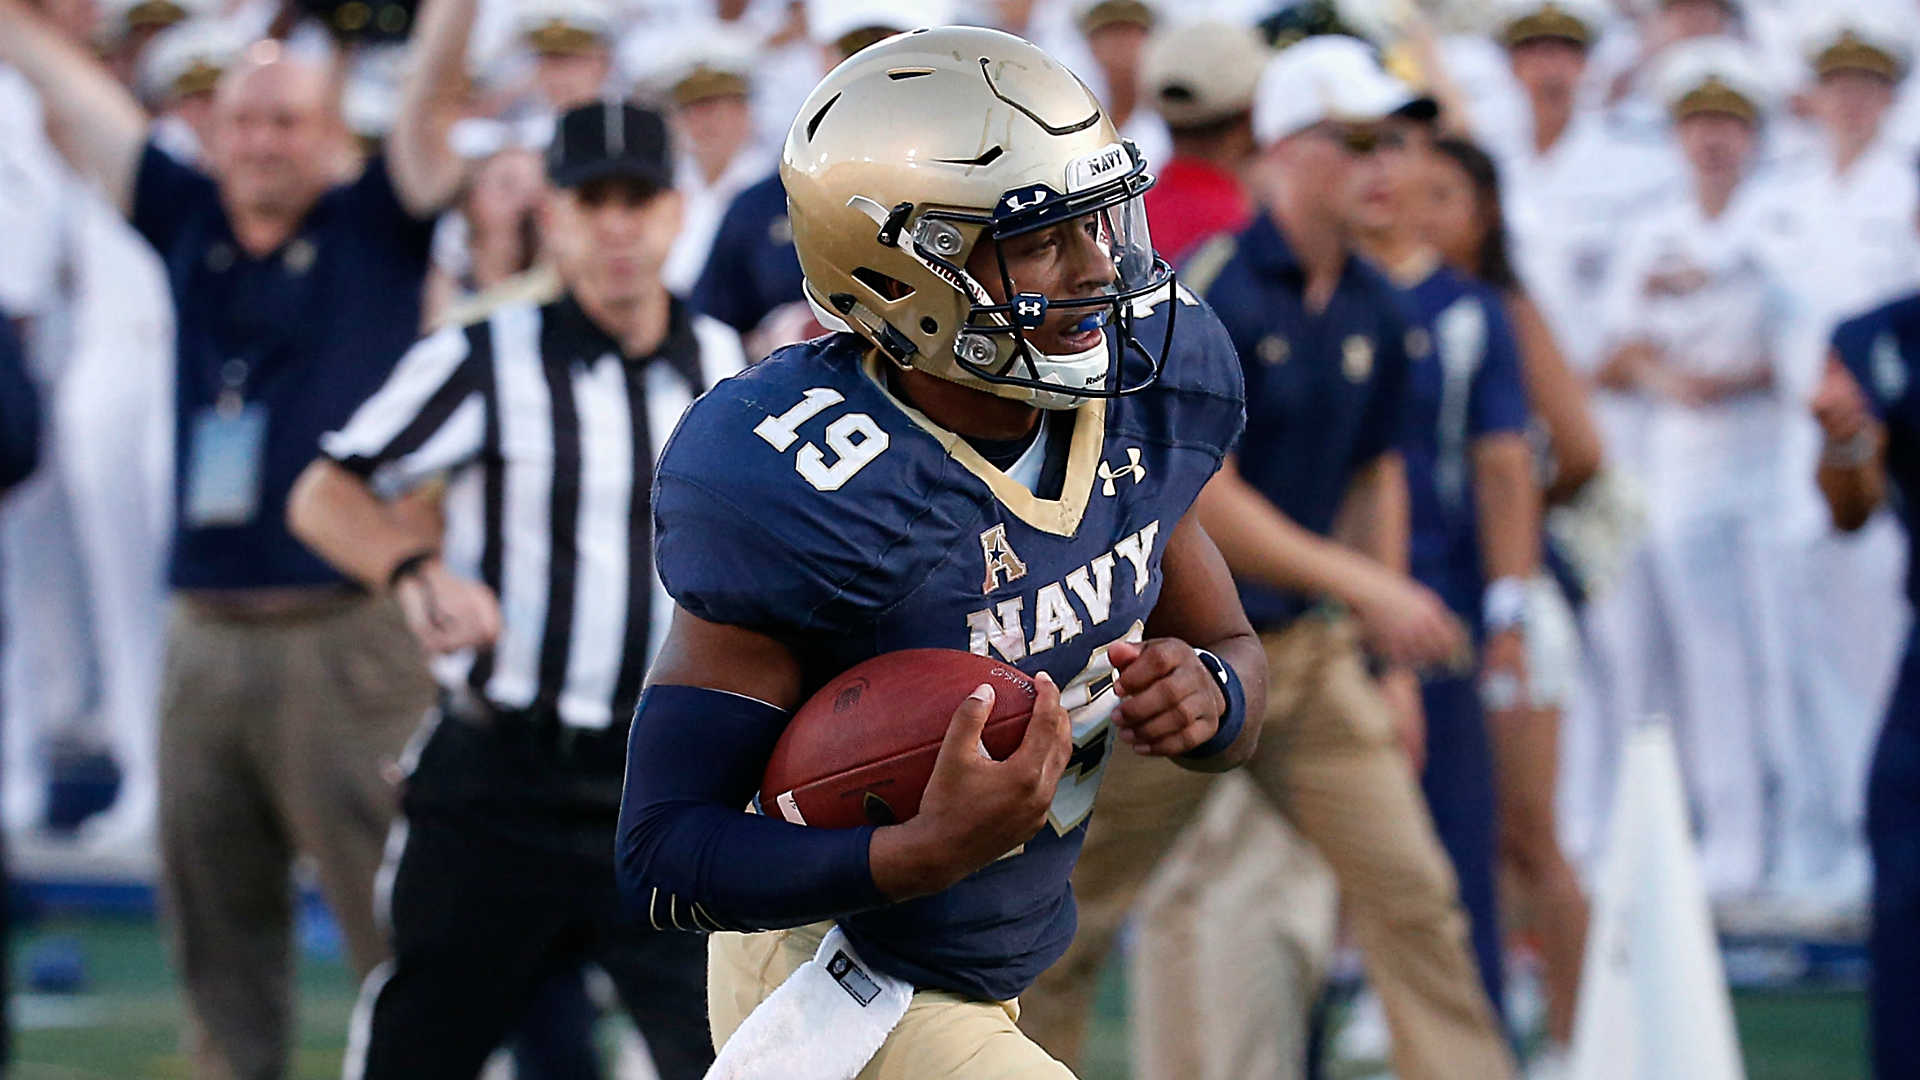 Navy at Houston betting lines and pick - AAC West on the line